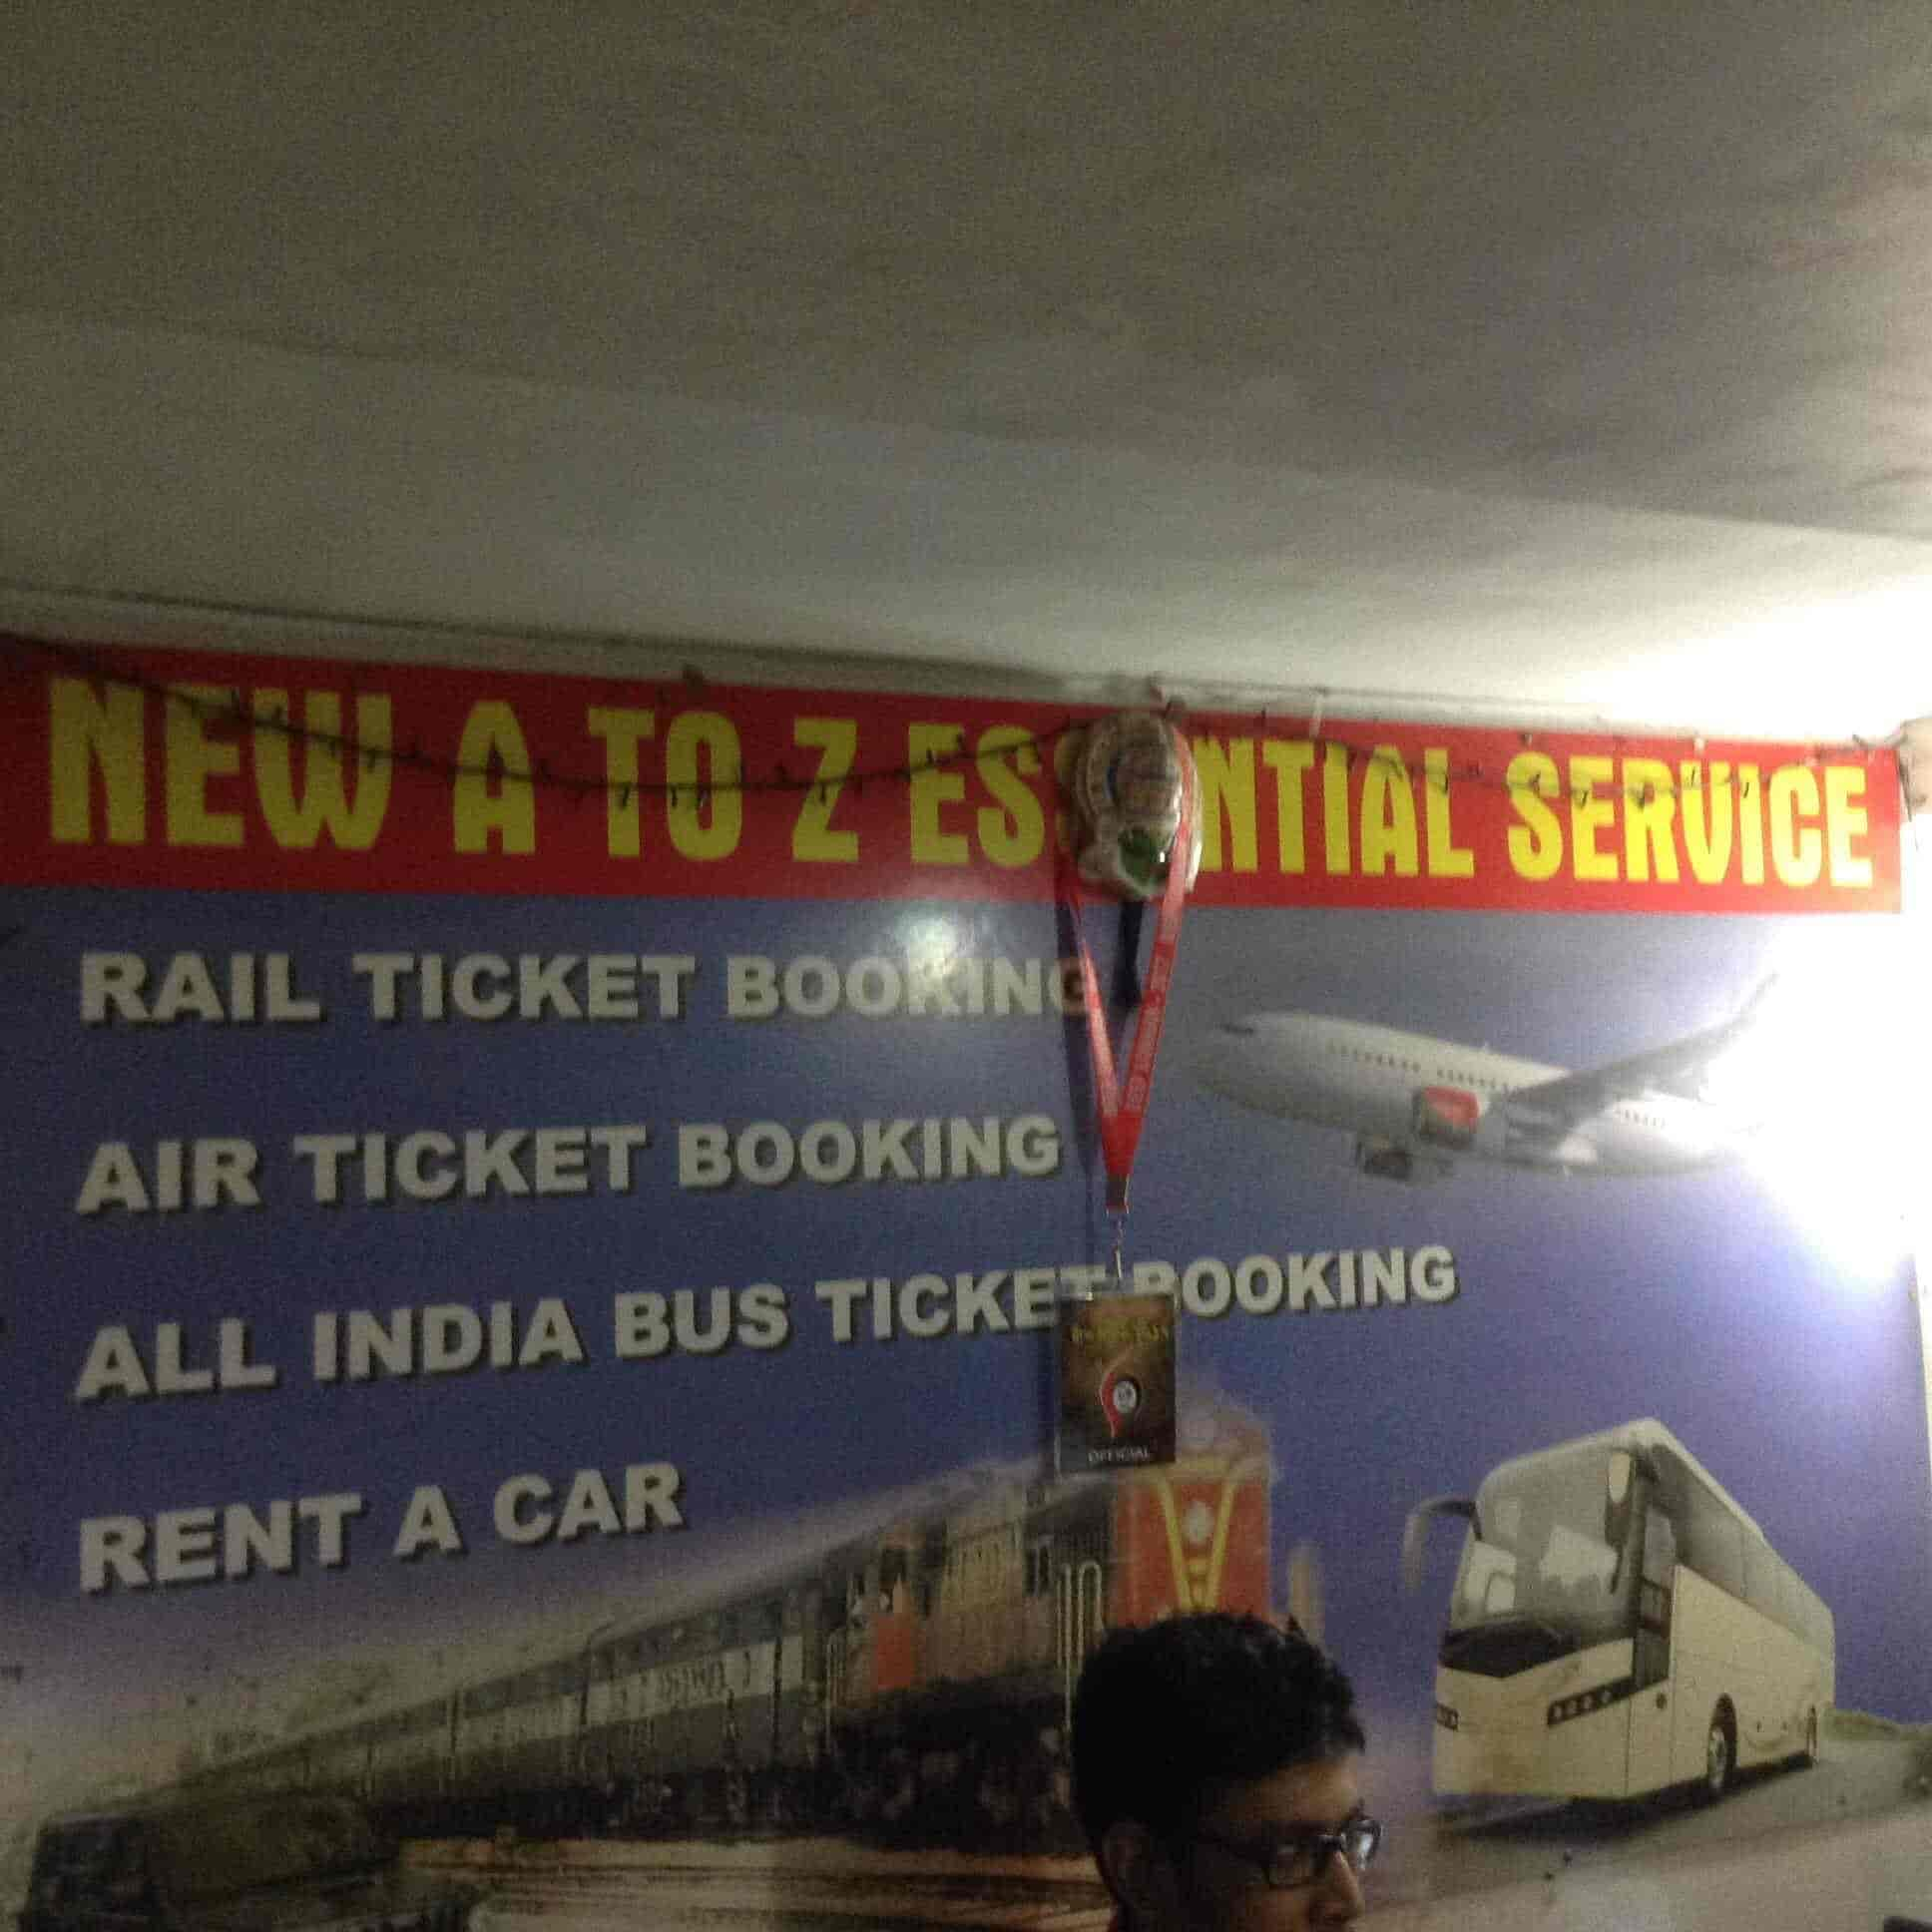 New A To Z Essential Service, Santoshpur - Travel Agents in